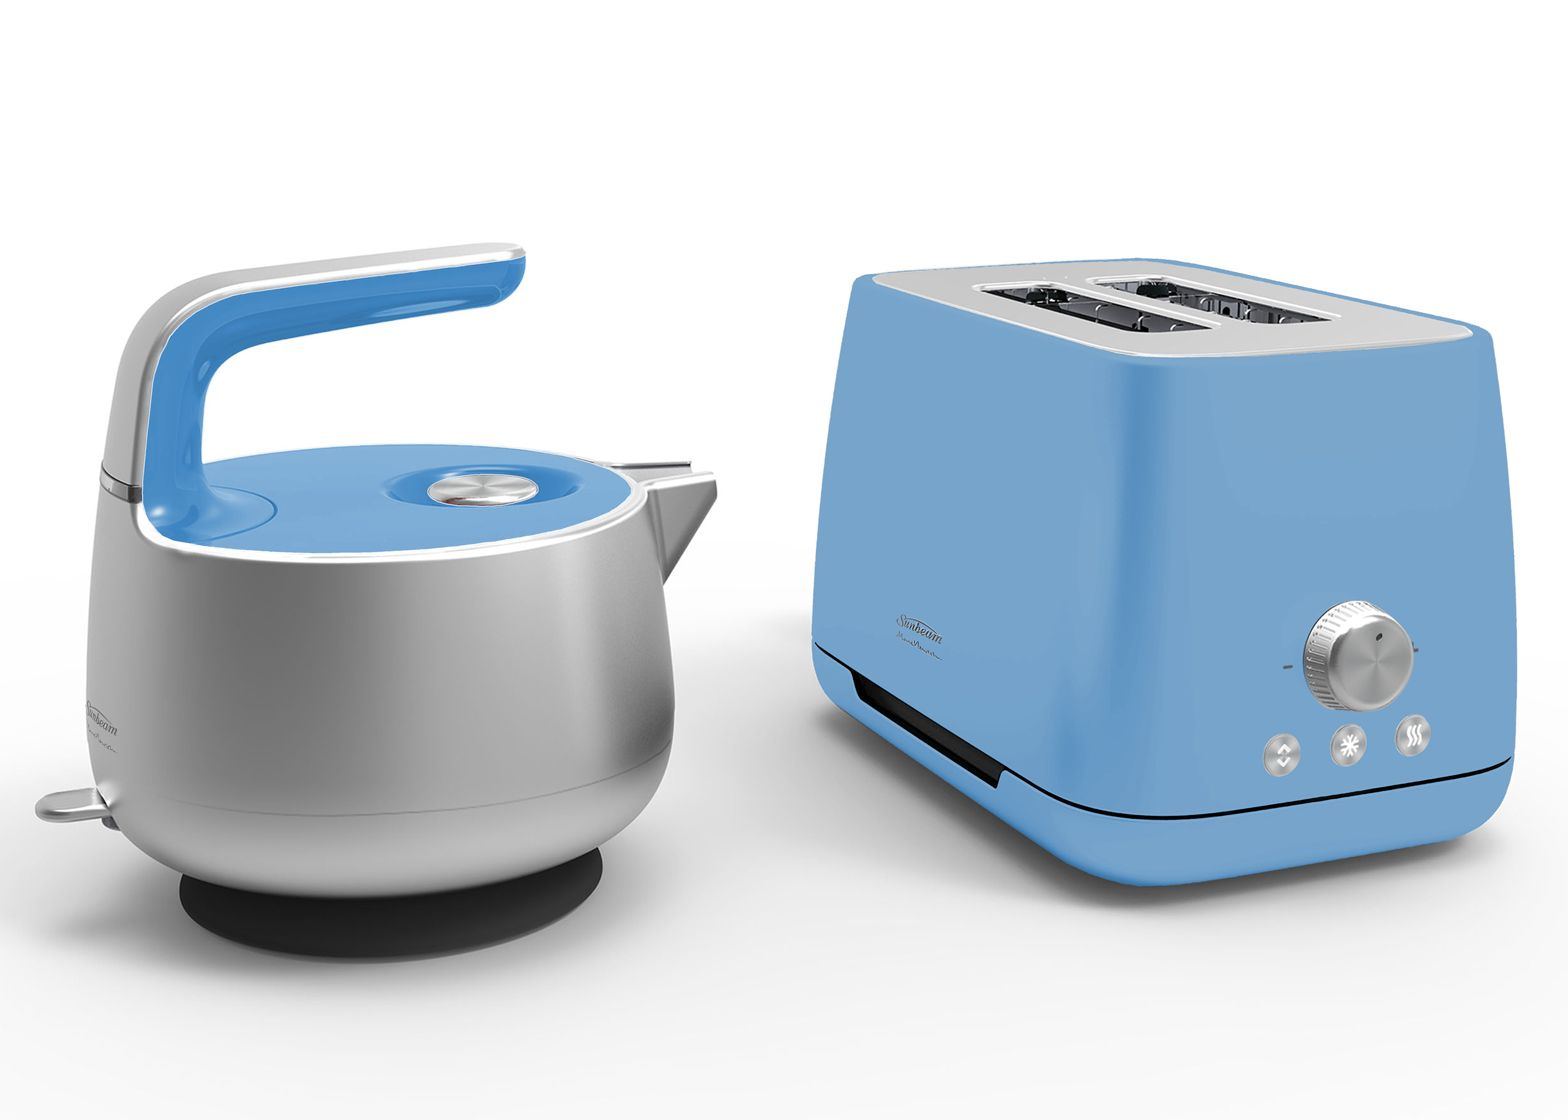 Uncategorized Sunbeam Kitchen Appliances 98 best images about kitchen appliances on pinterest marc newson designs matching kettle and toaster for sunbeam soft furnishingskitchen applianceskitchenwareindustrial